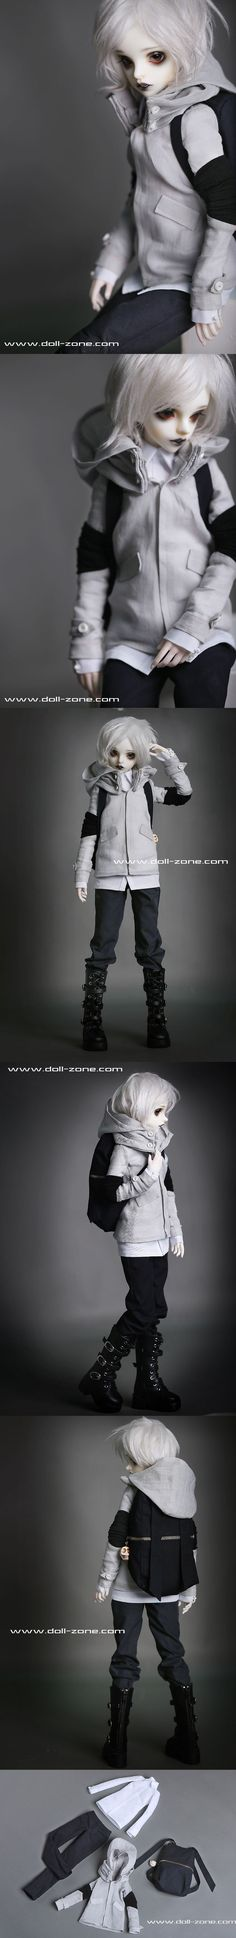 BJD Carte-1 Boy 45cm Ball-jointed Doll_44~45CM DOLLS_DOLLZONE_DOLL_Ball Jointed Dolls (BJD) company-Legenddoll